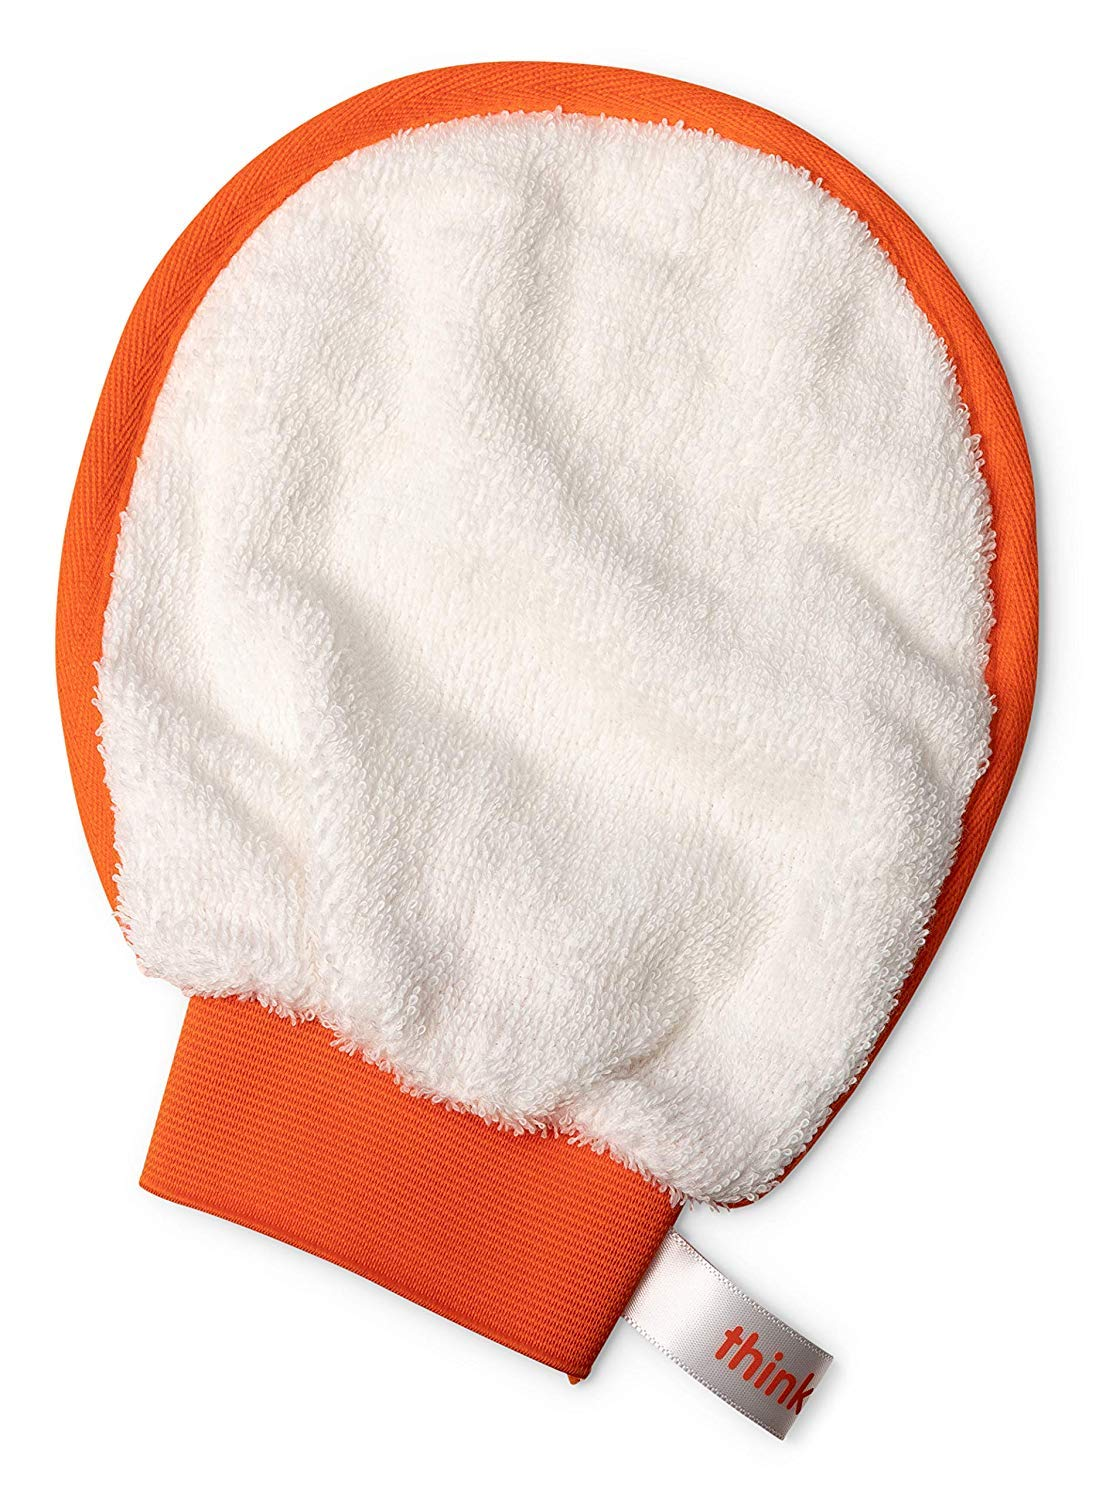 Thinkbaby Organic Cotton Mitt Luffa for Baby, Kids, Adults   for Bath, Showers, Fits Over Hand, Use On Body   Soft Fibers, Eco-Friendly, Machine Washable, Orange